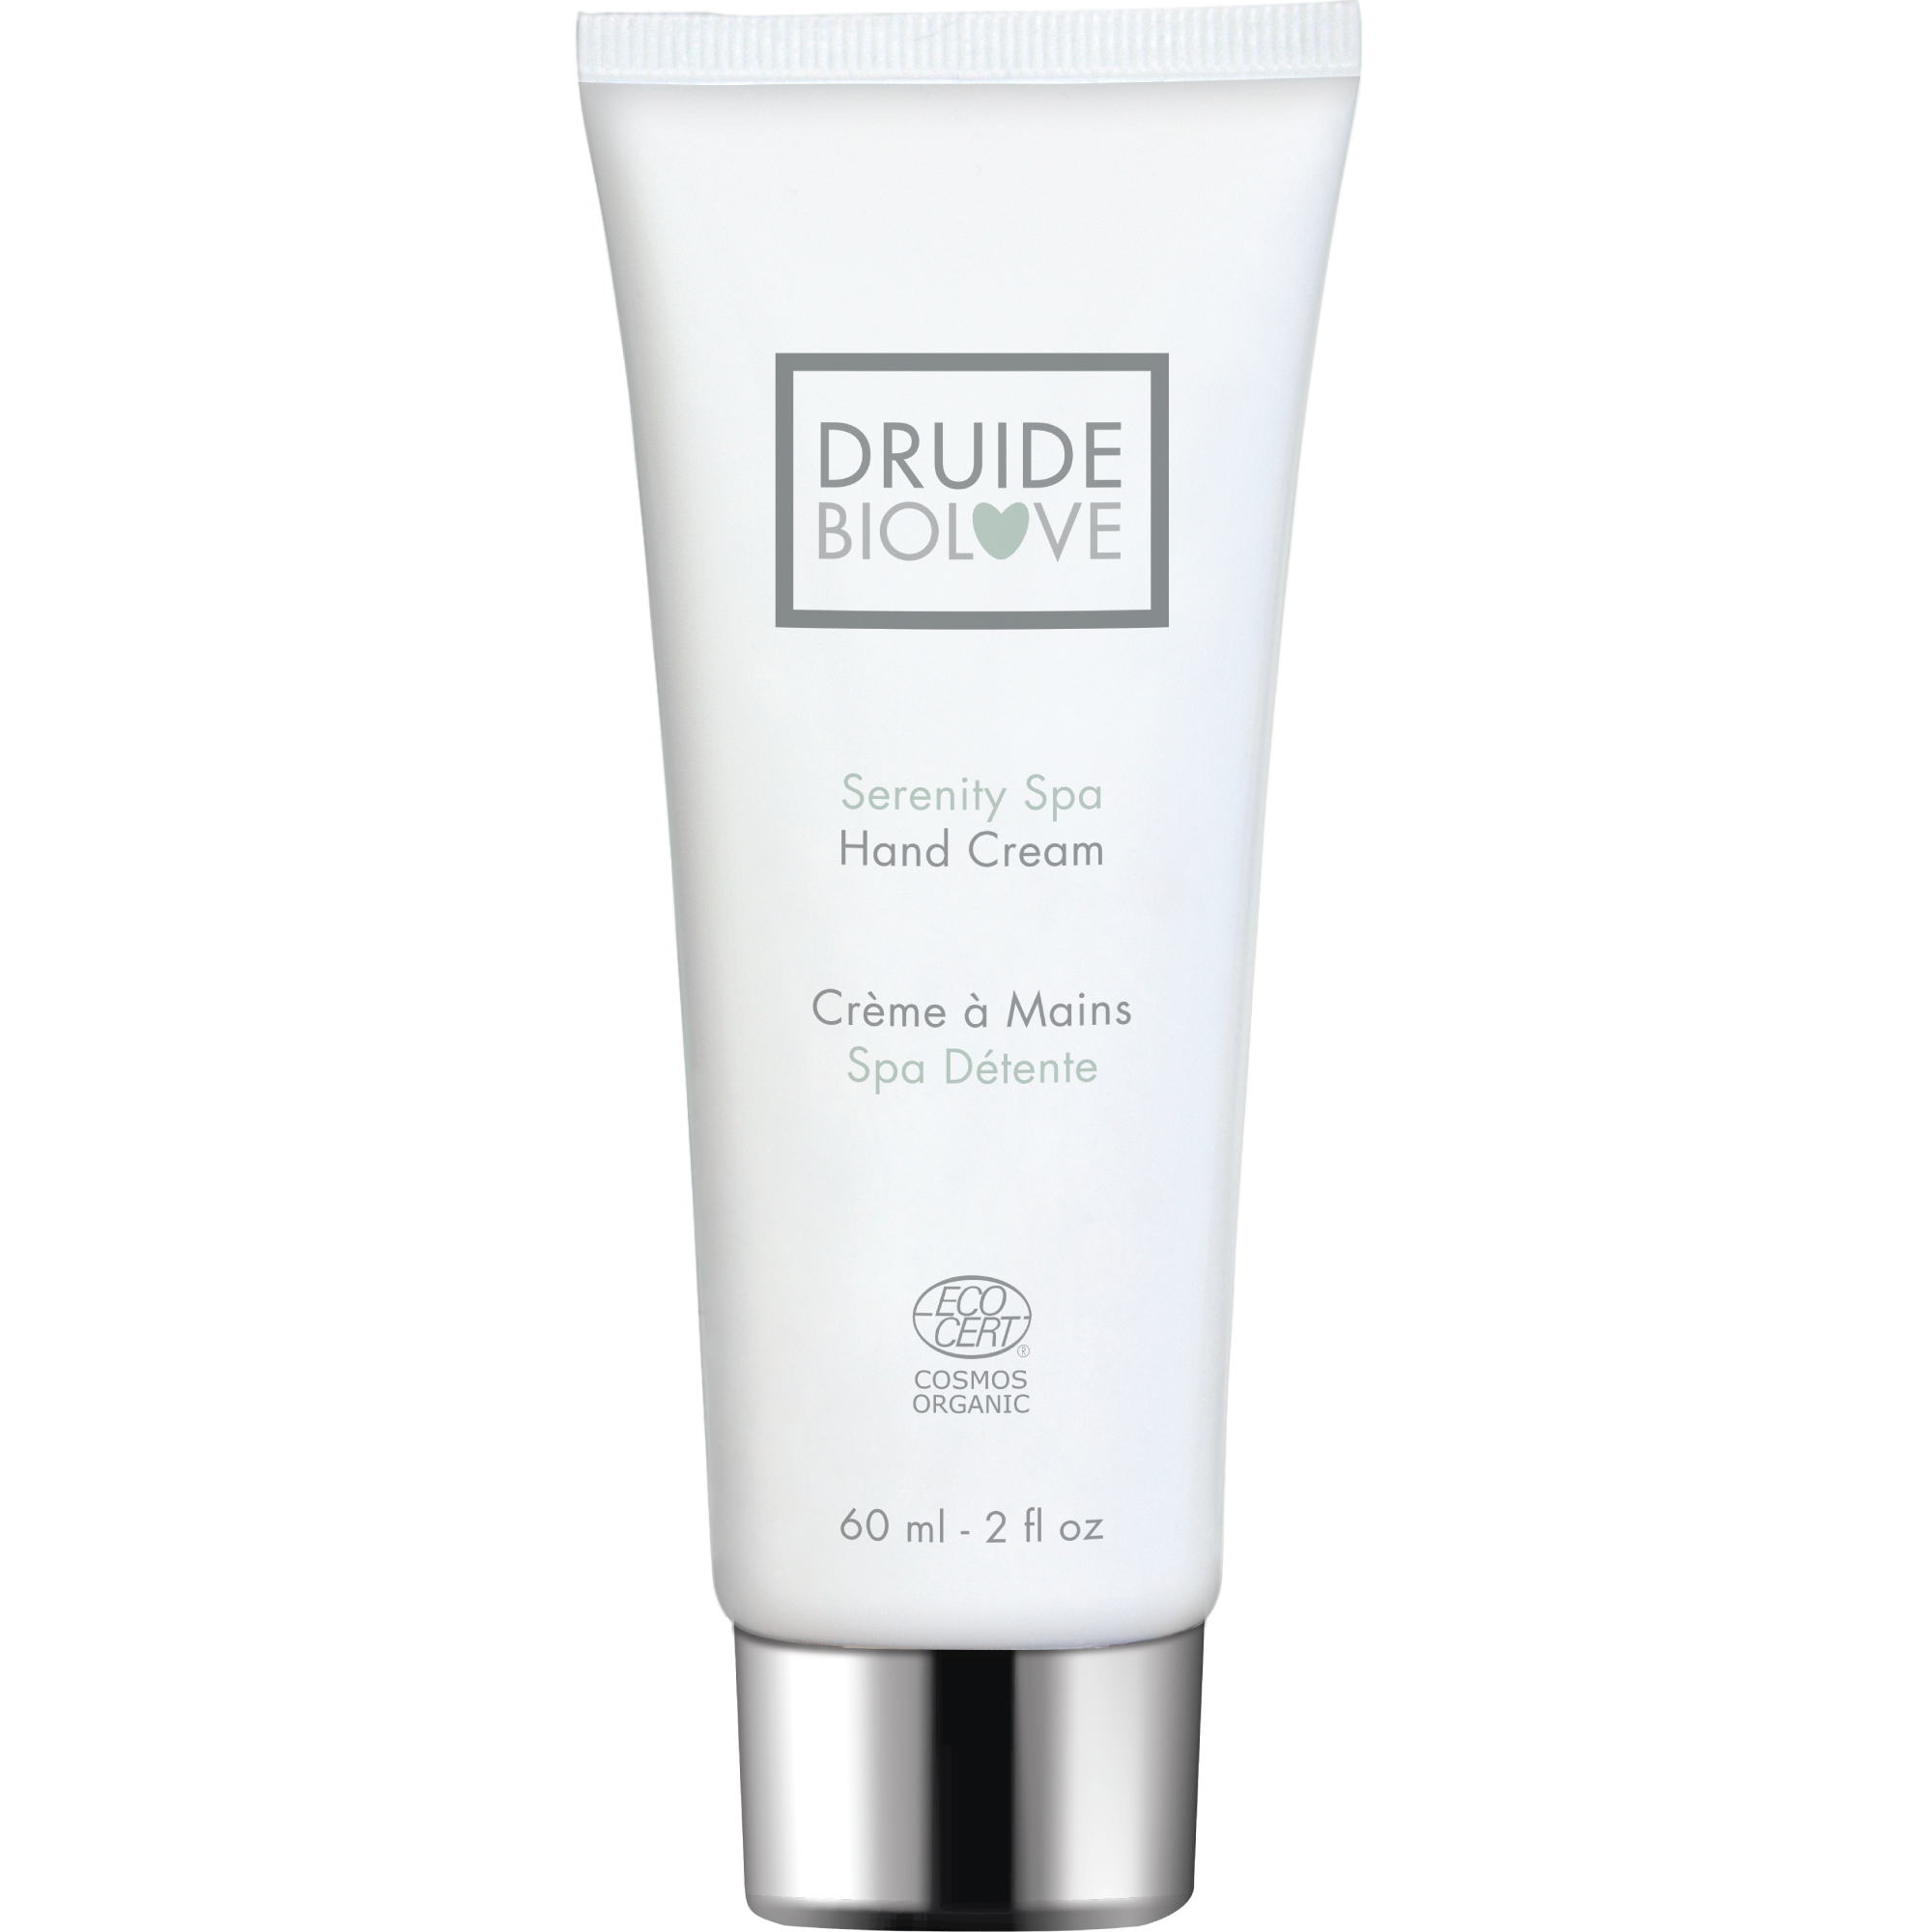 Druide Antiseptic Cleanser Package #1 (Serenity)